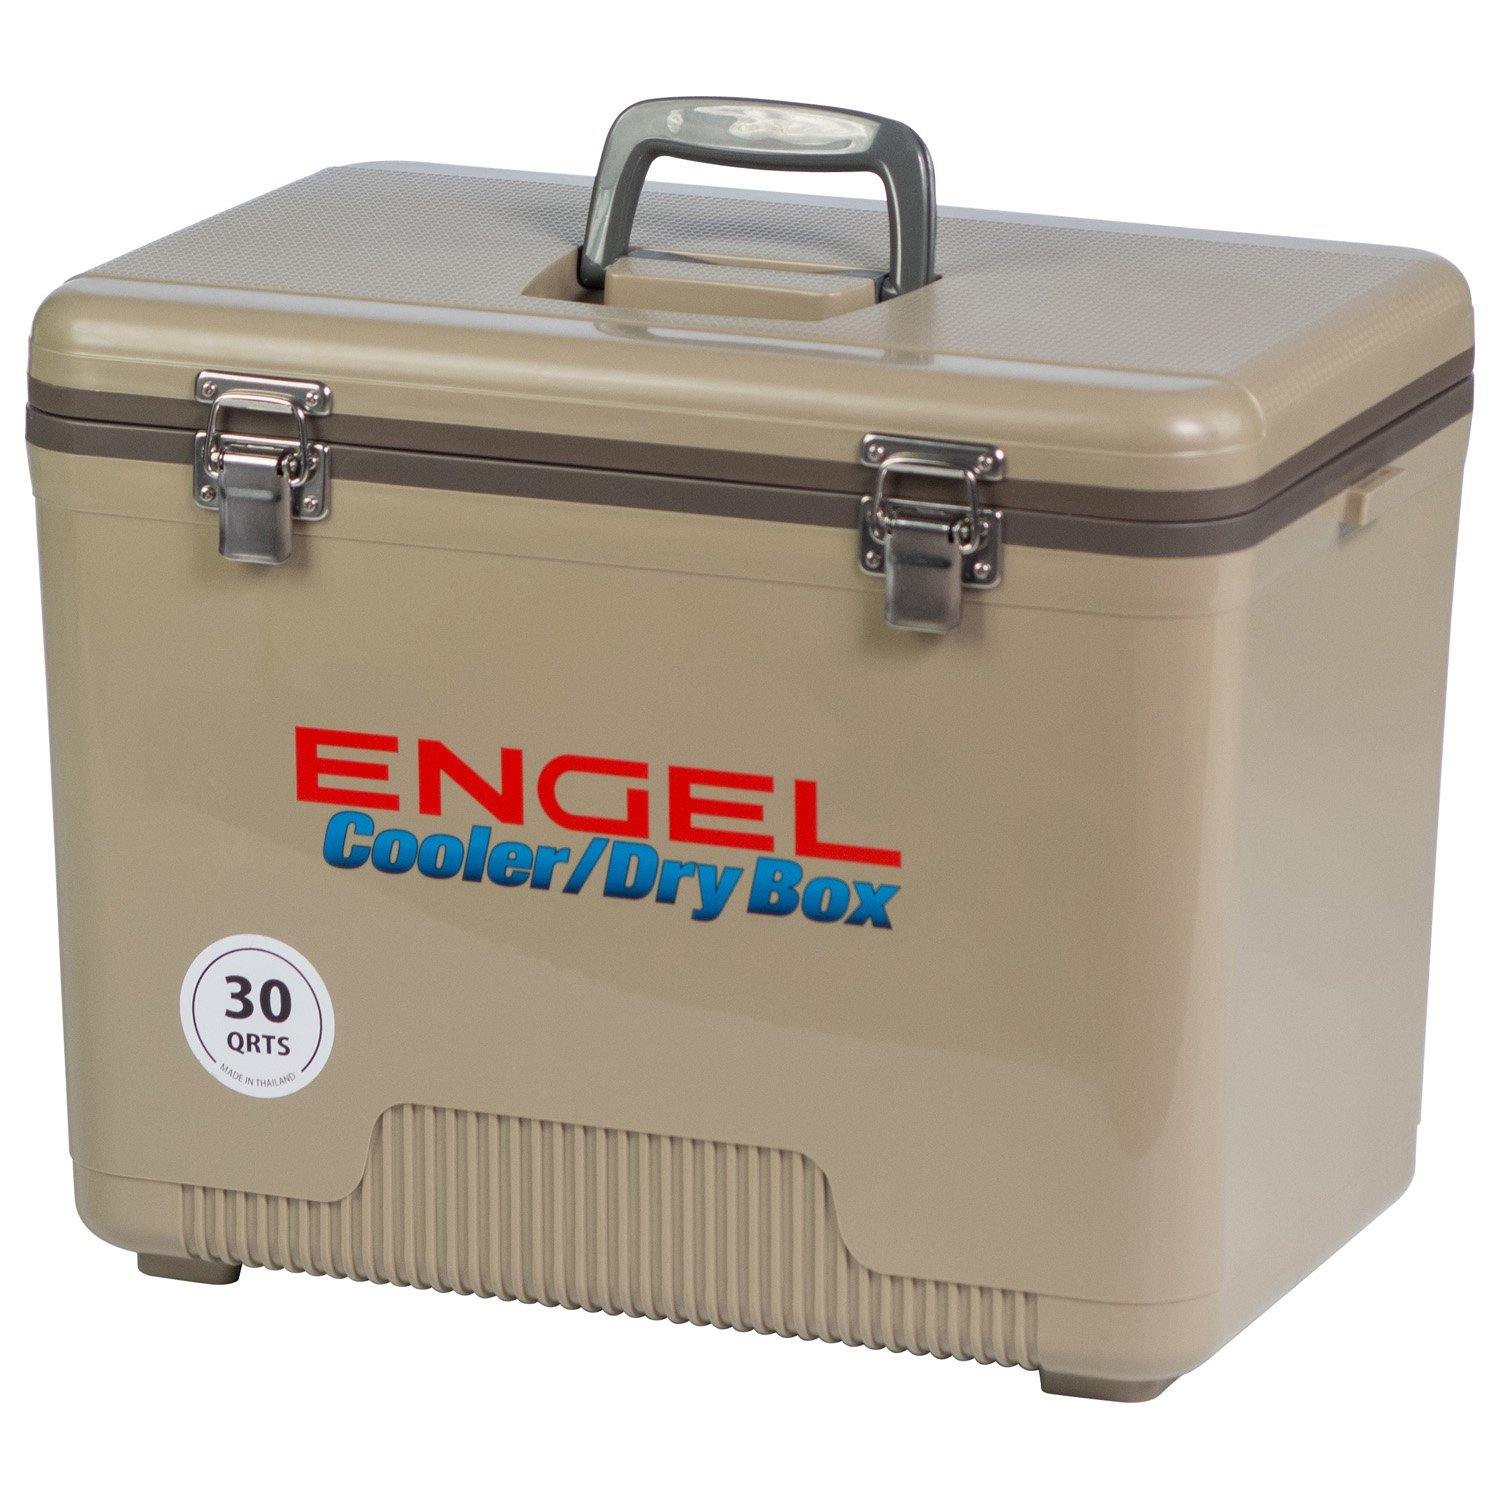 Engel USA Kühler/Dry Box, 30 Quart